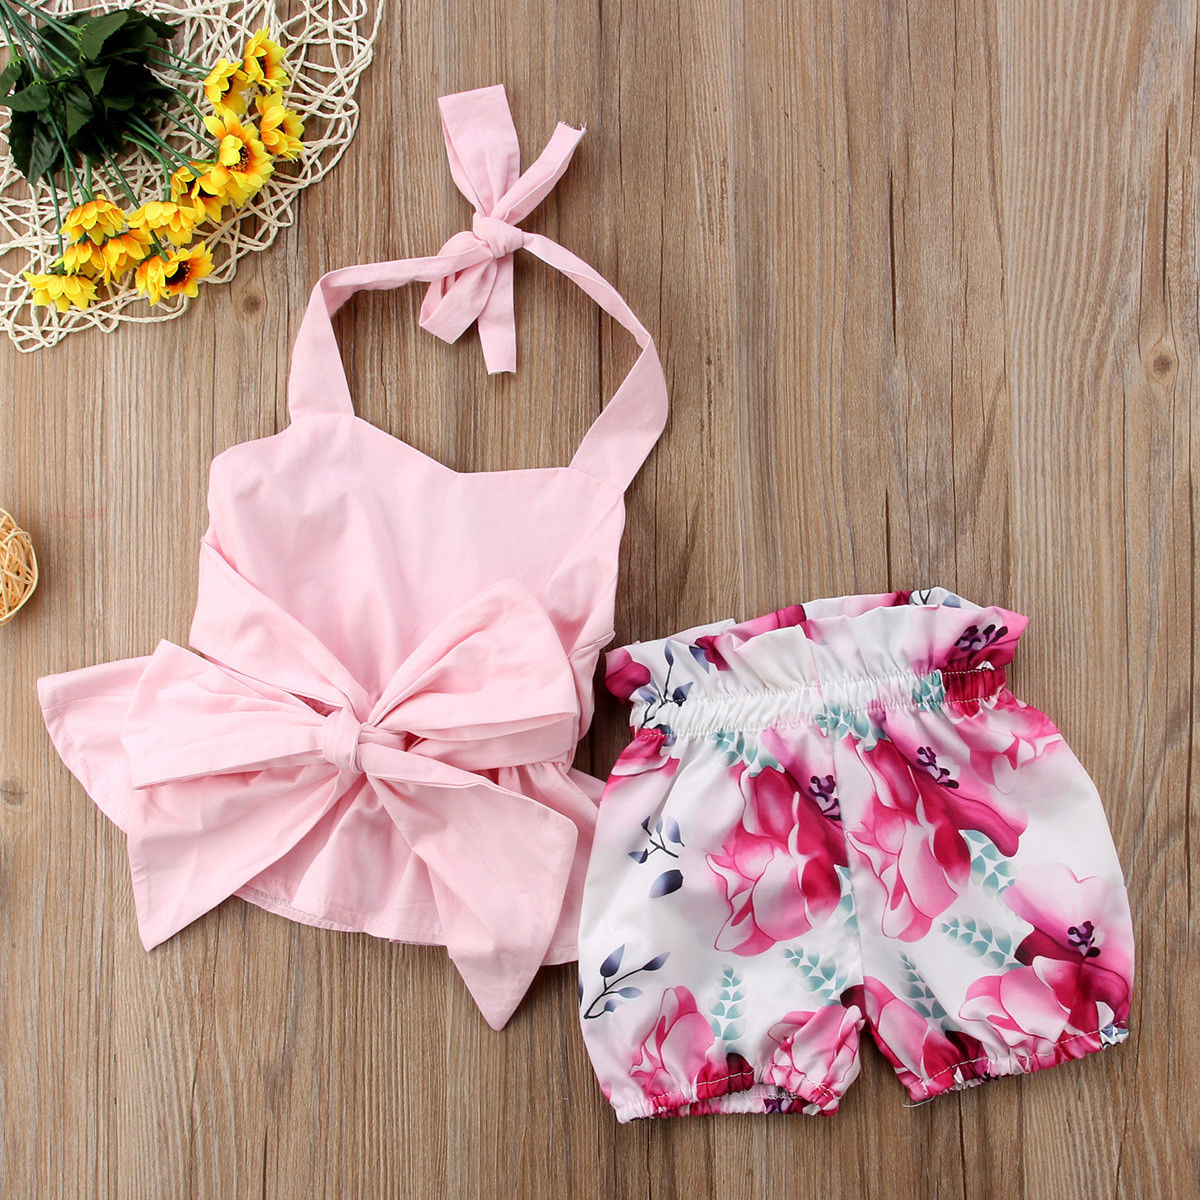 Pudcoco Girl Set 0-24M Newborn Baby Girls Bow-knot Backless Tops Romper+Floral Shorts Clothes UK Stock